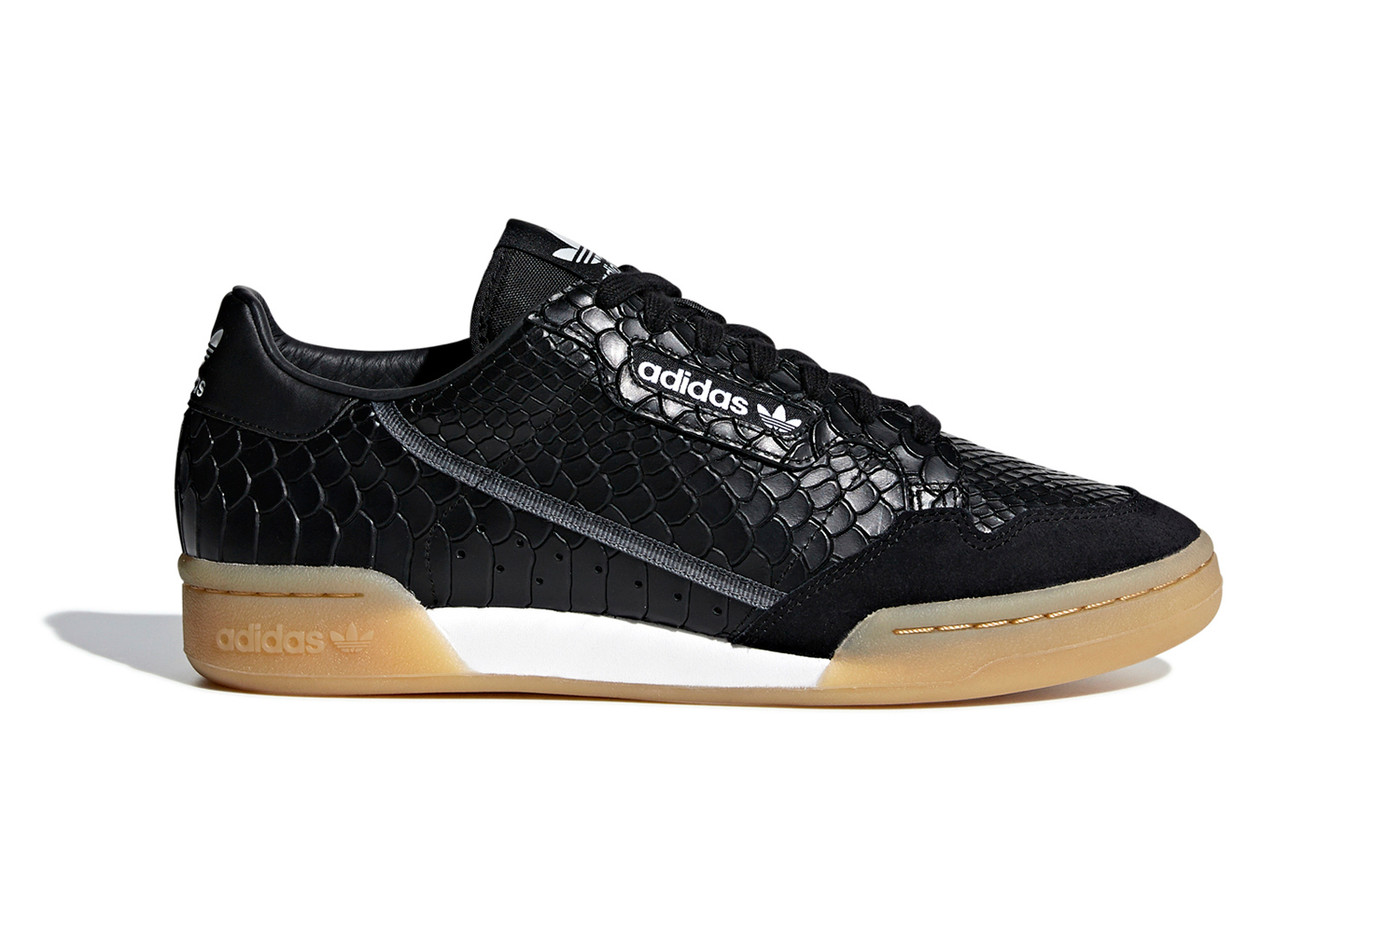 adidas-originals-continental-80-snakeskin-black-05